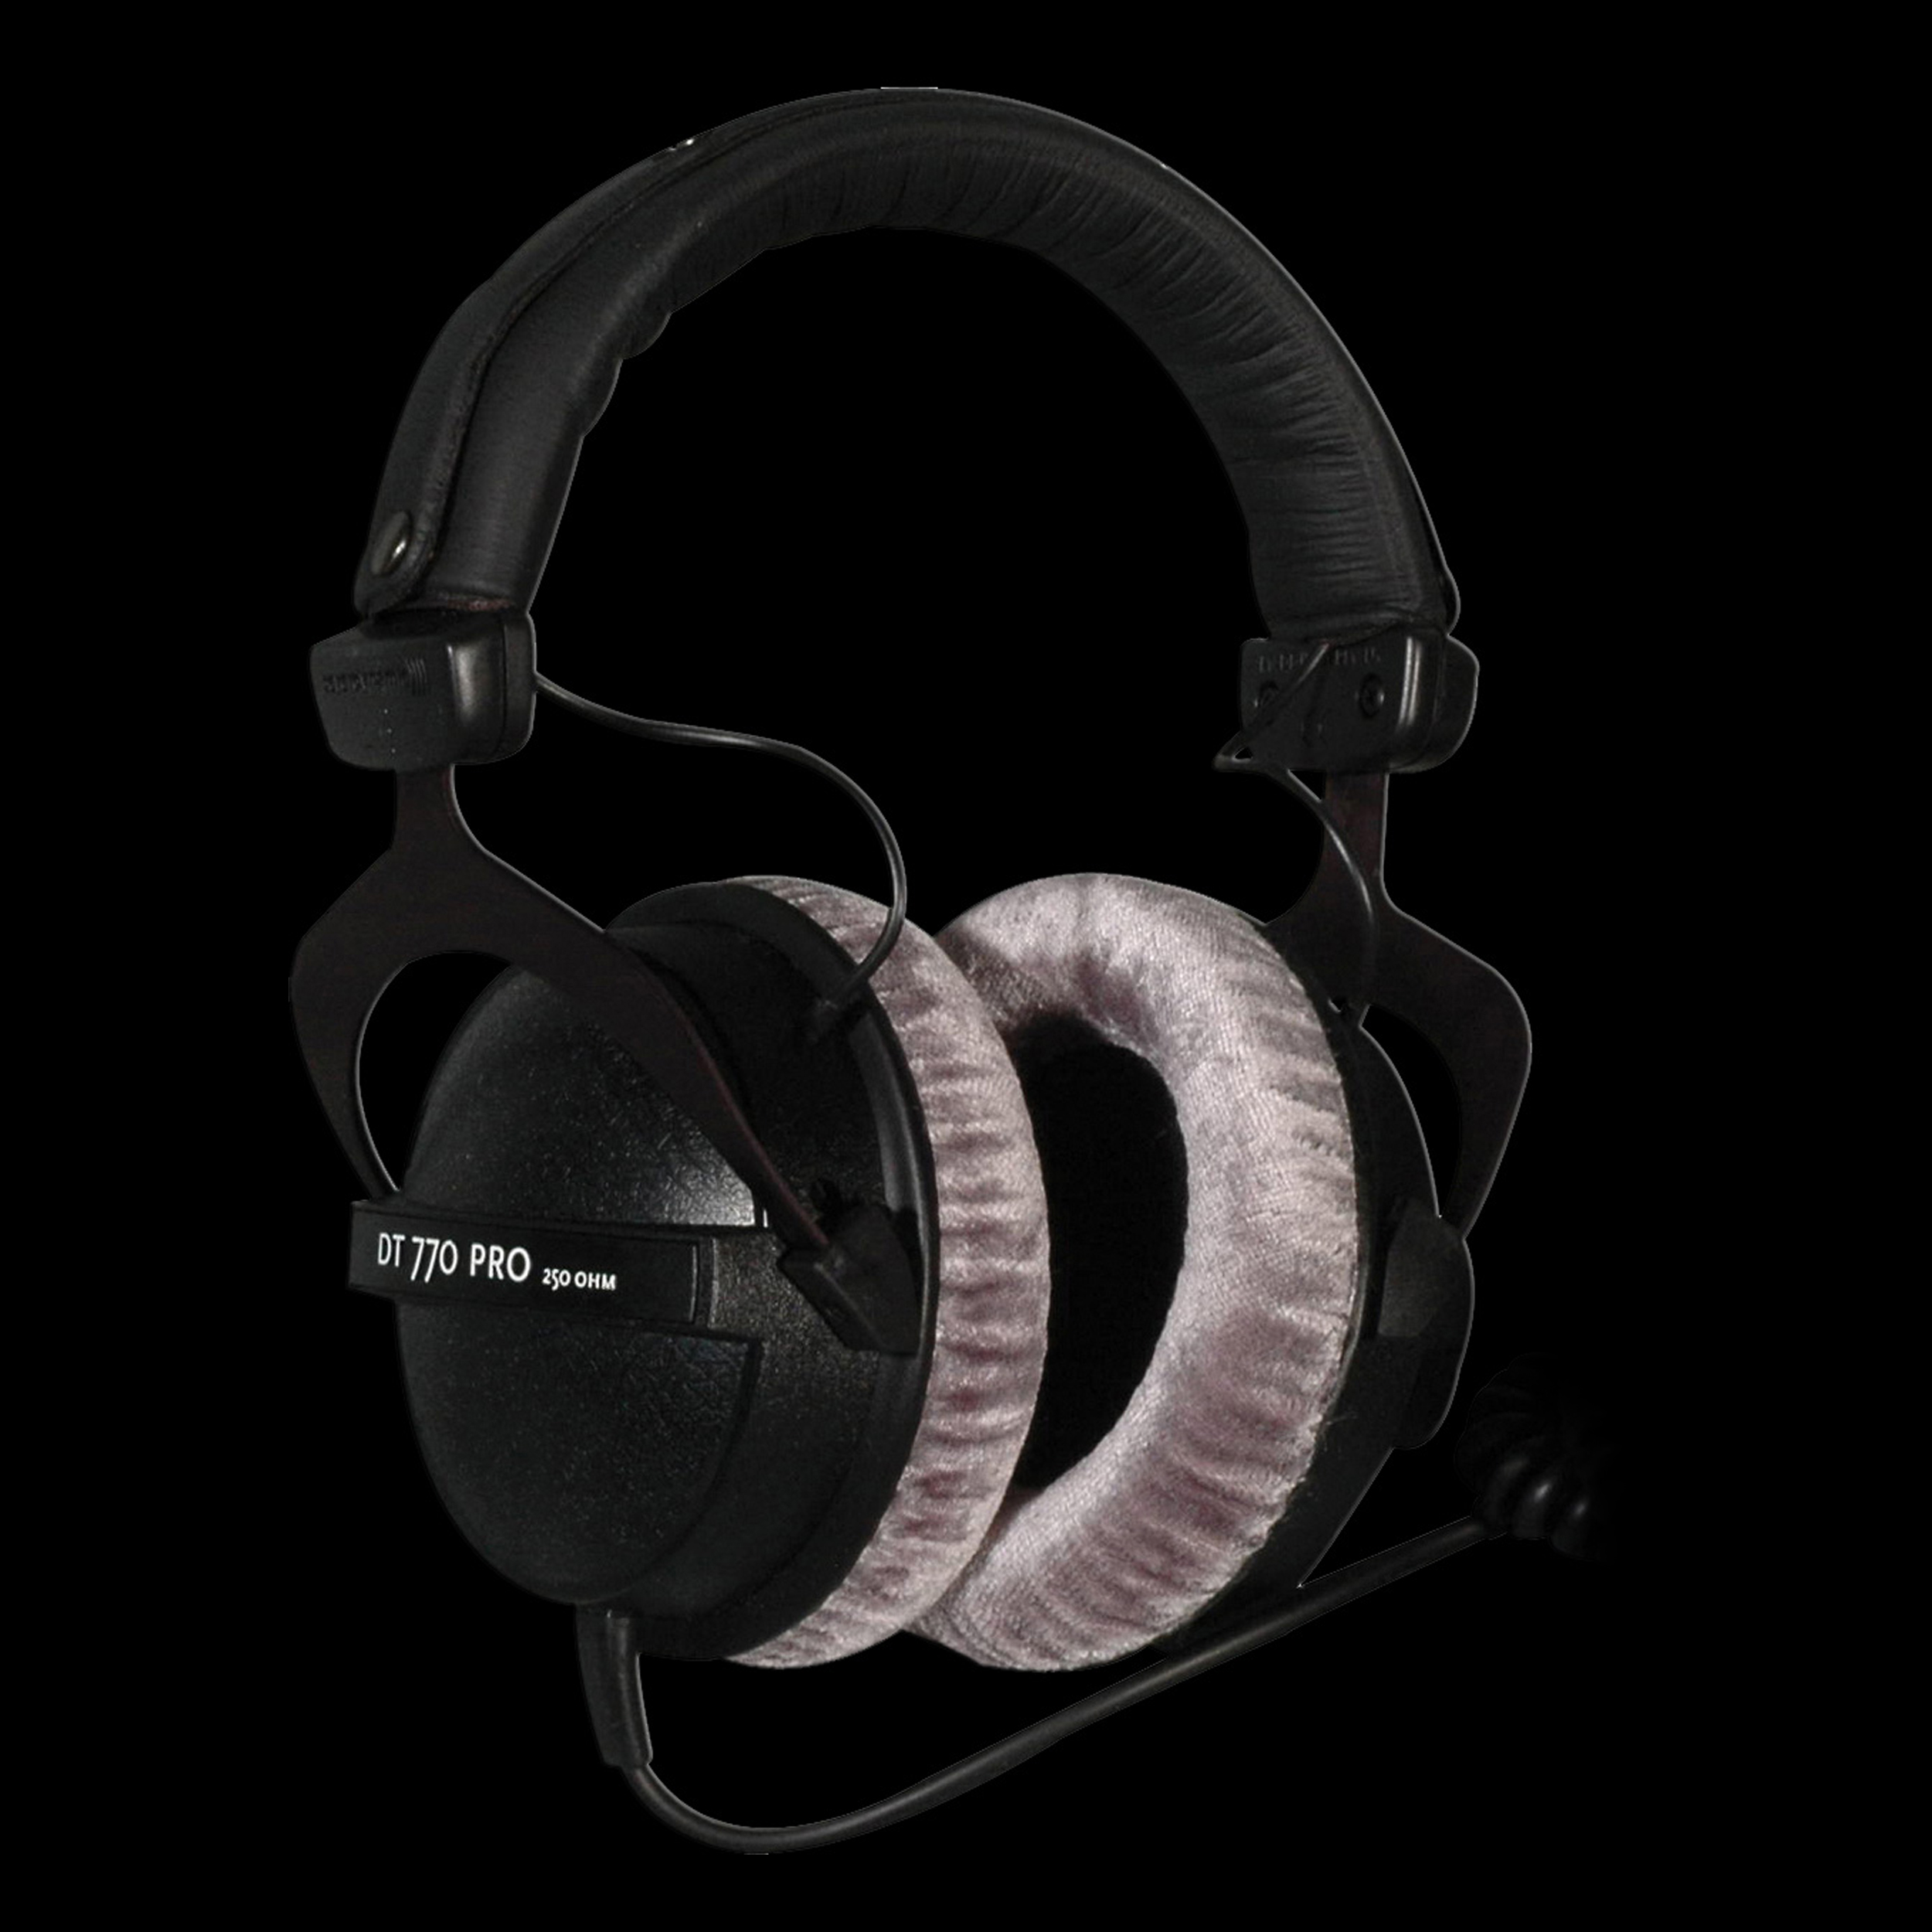 beyerdynamic dt770 pro studio headphones 250ohm 4010118459047 ebay. Black Bedroom Furniture Sets. Home Design Ideas